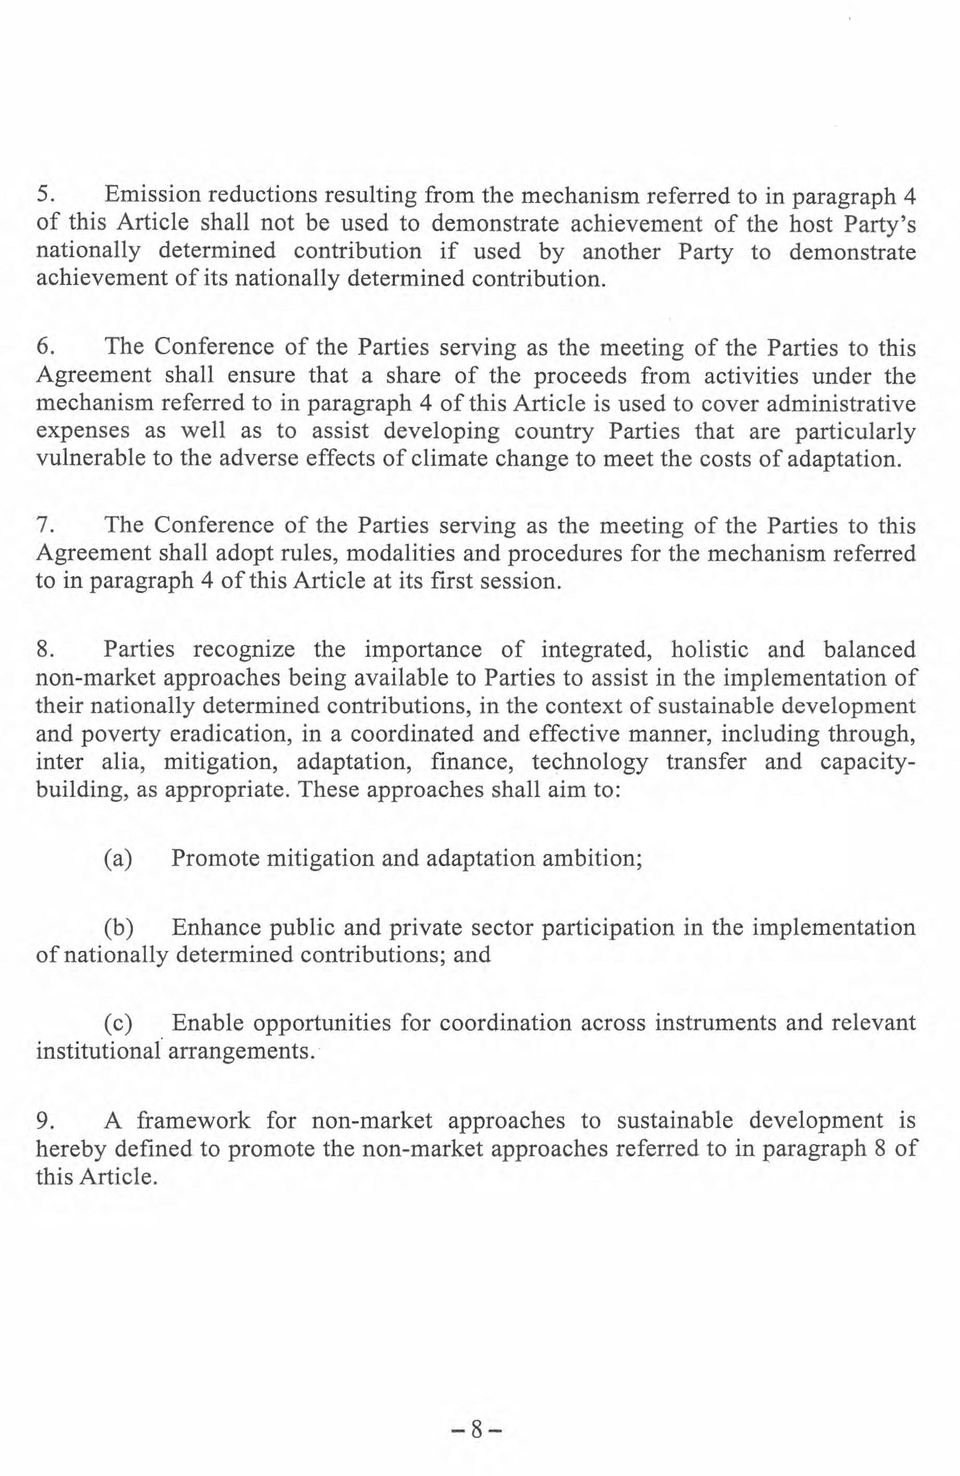 The Conference of the Parties serving as the meeting of the Parties to this Agreement shall ensure that a share of the proceeds from activities under the mechanism referred to in paragraph 4 of this